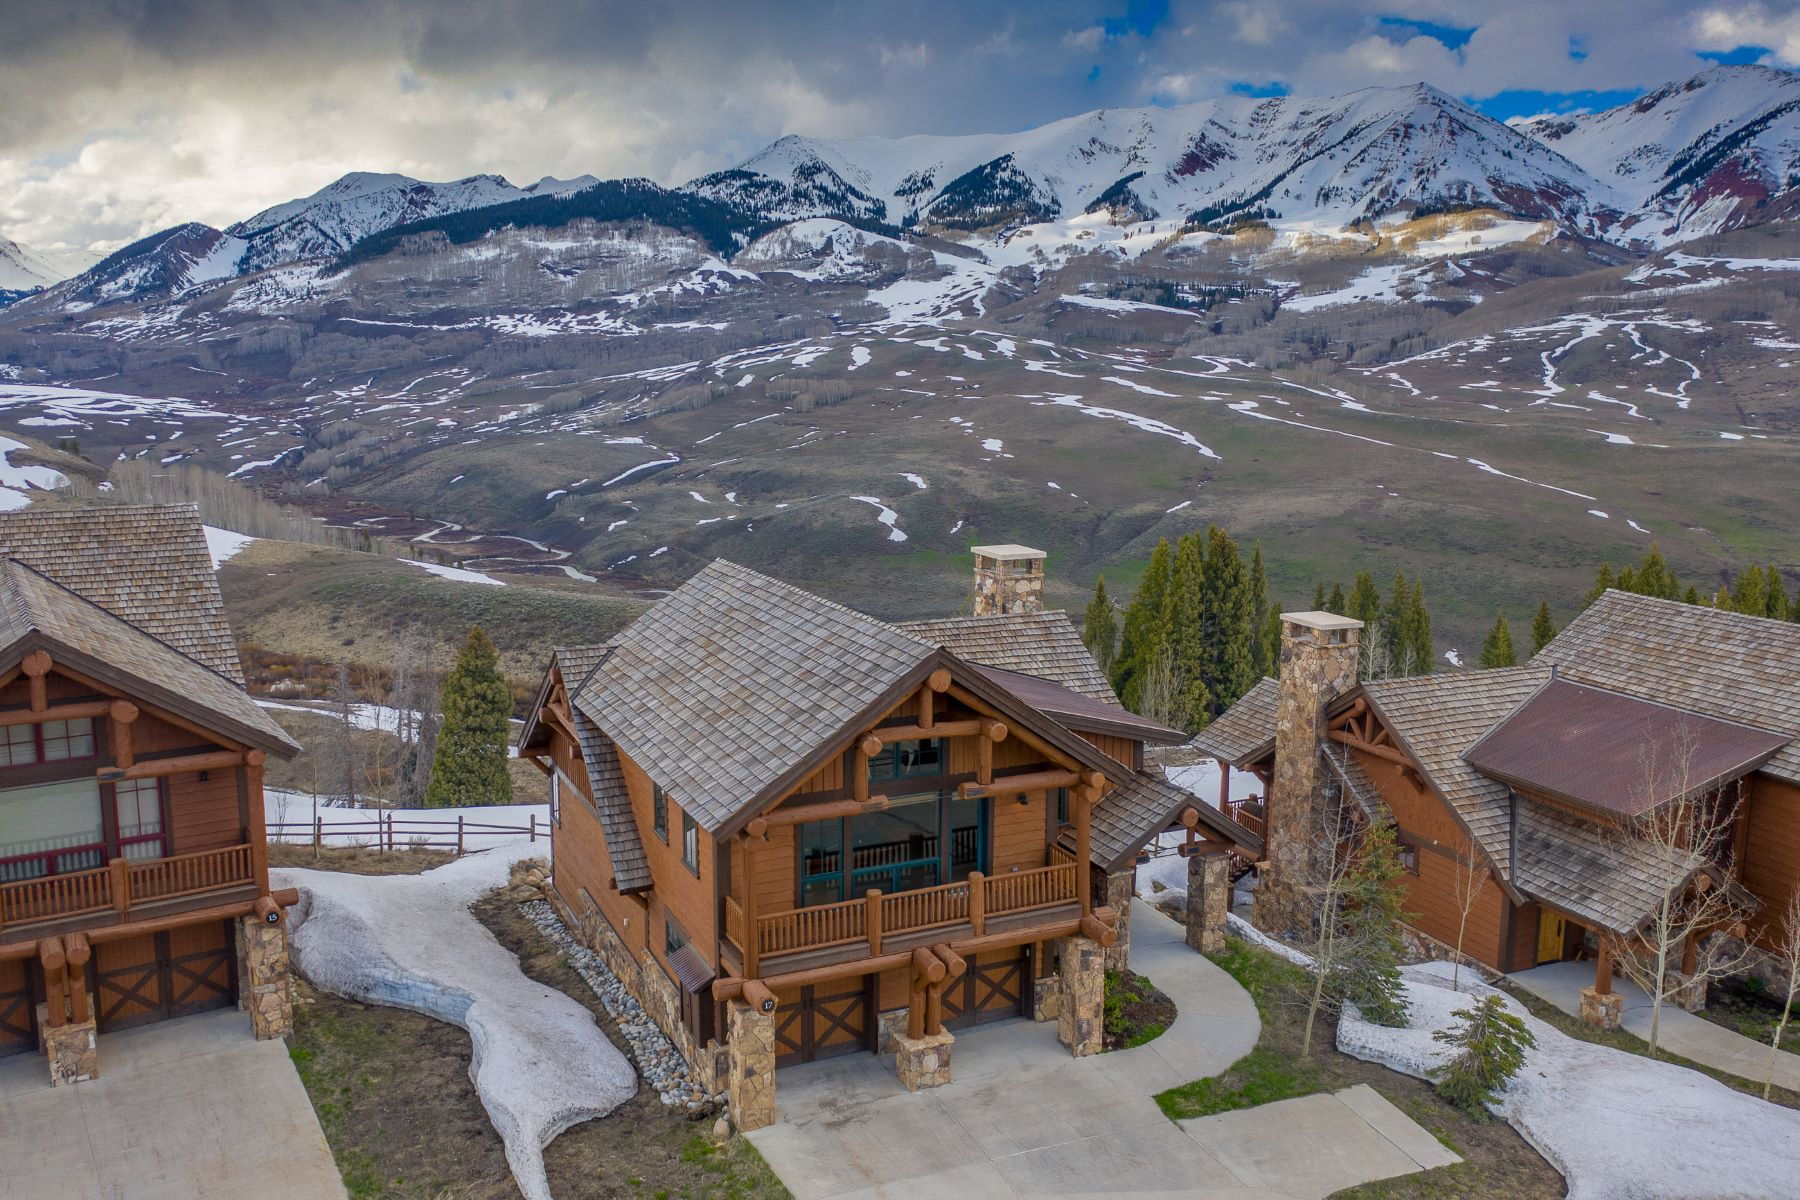 Single Family Homes for Sale at 17 Wildhorse at Prospect 17 Wildhorse Trail Mount Crested Butte, Colorado 81225 United States